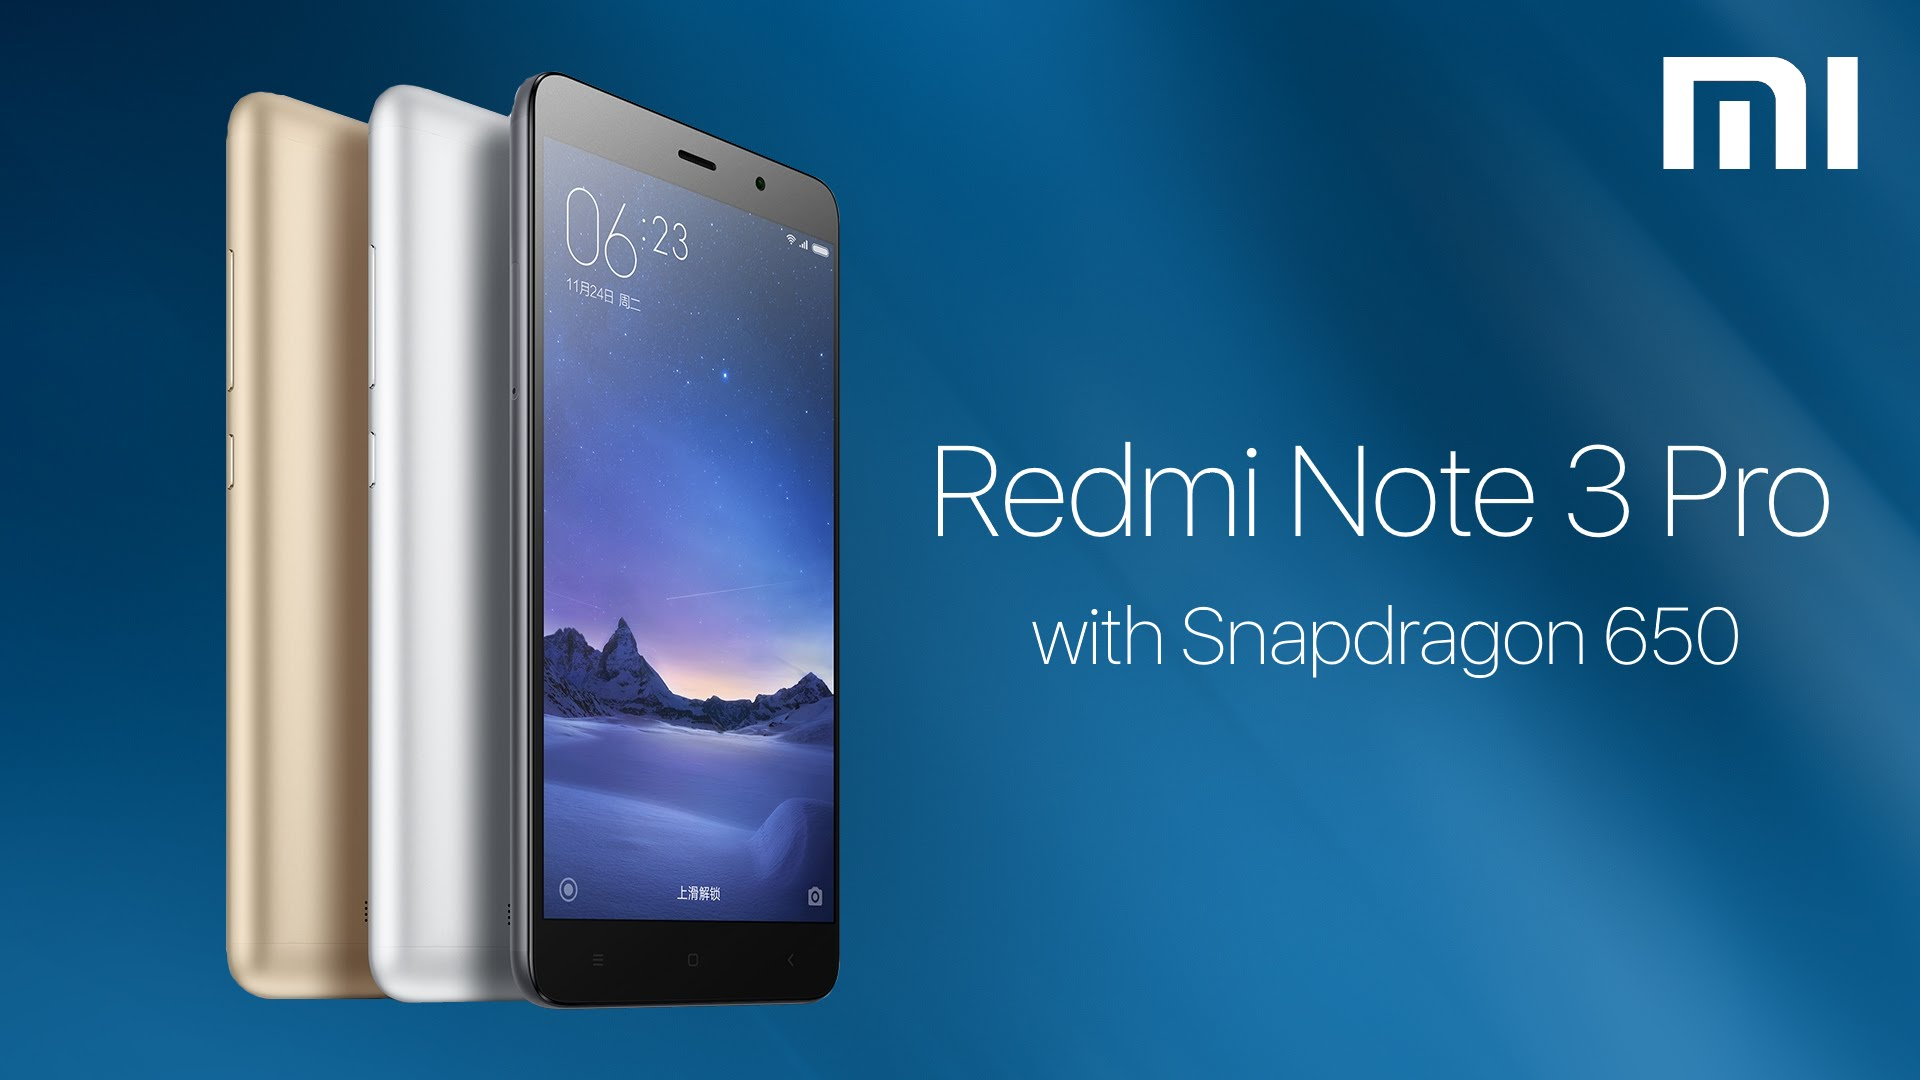 Xiaomi Redmi Note 3 Pro On Offer At 161 Shipping Included On Gearbest